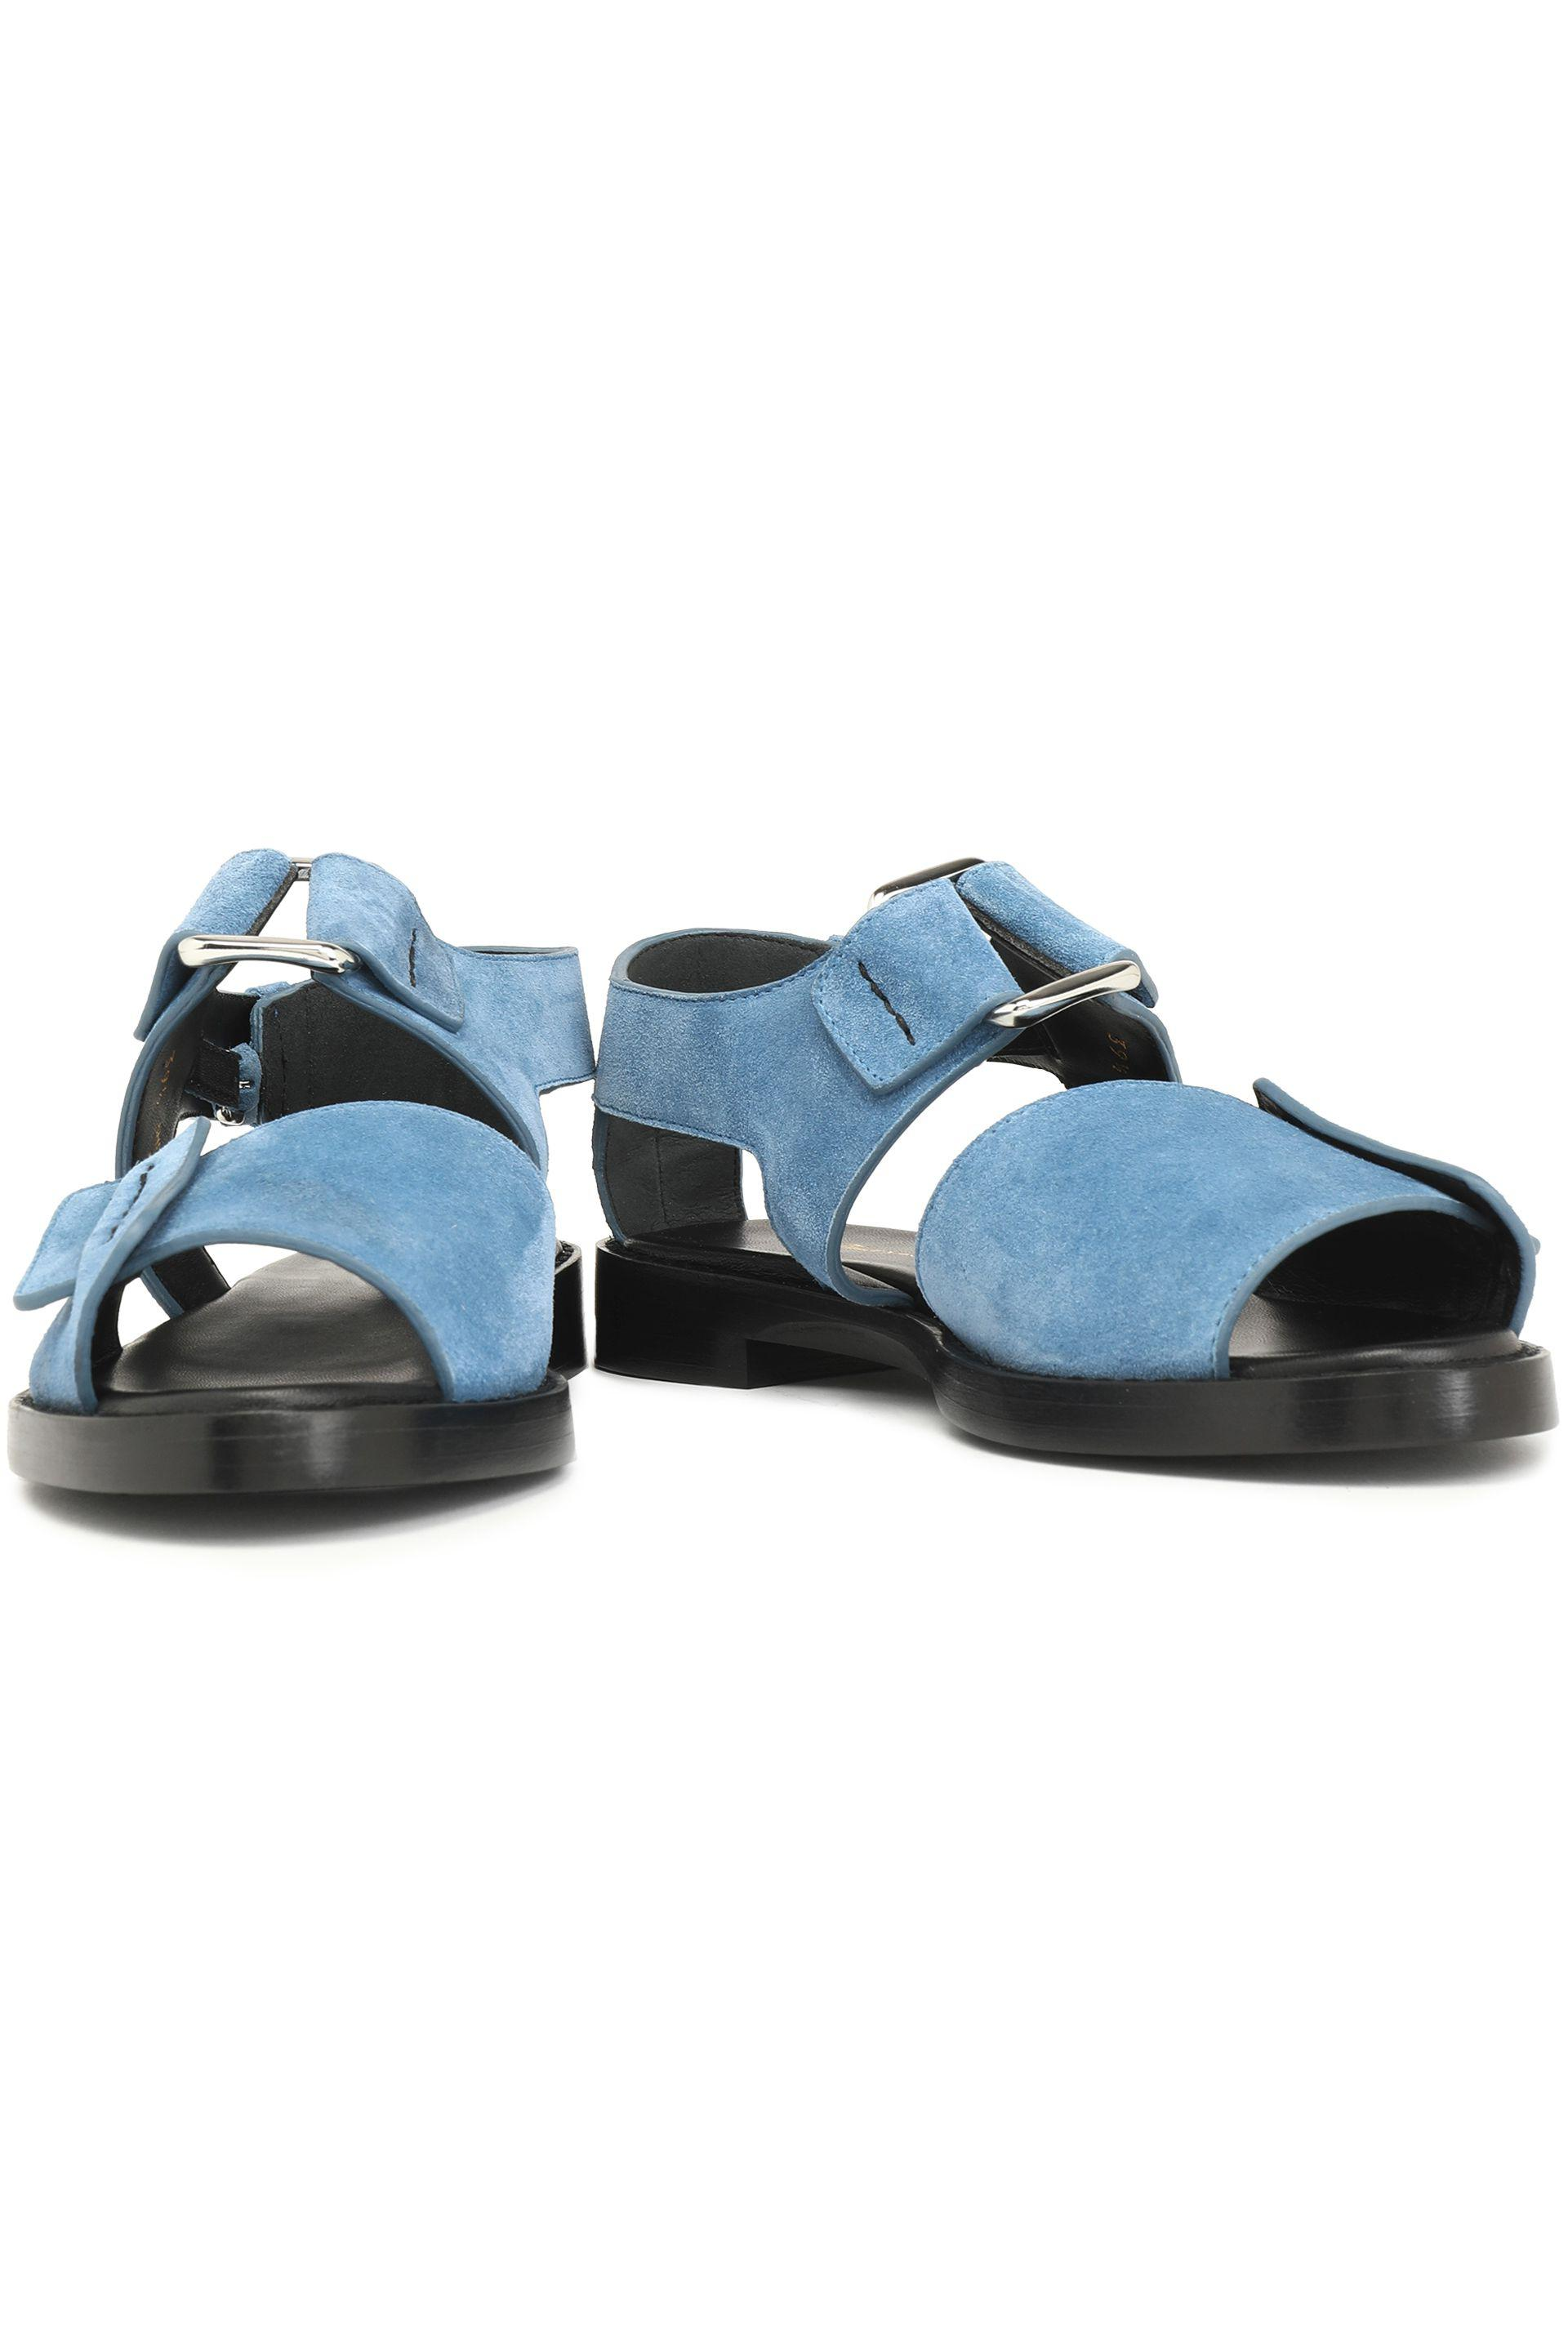 100% original sale online 3.1 Phillip Lim Suede Cutout Sandals buy cheap newest websites online with credit card buy online outlet N5F7B3b